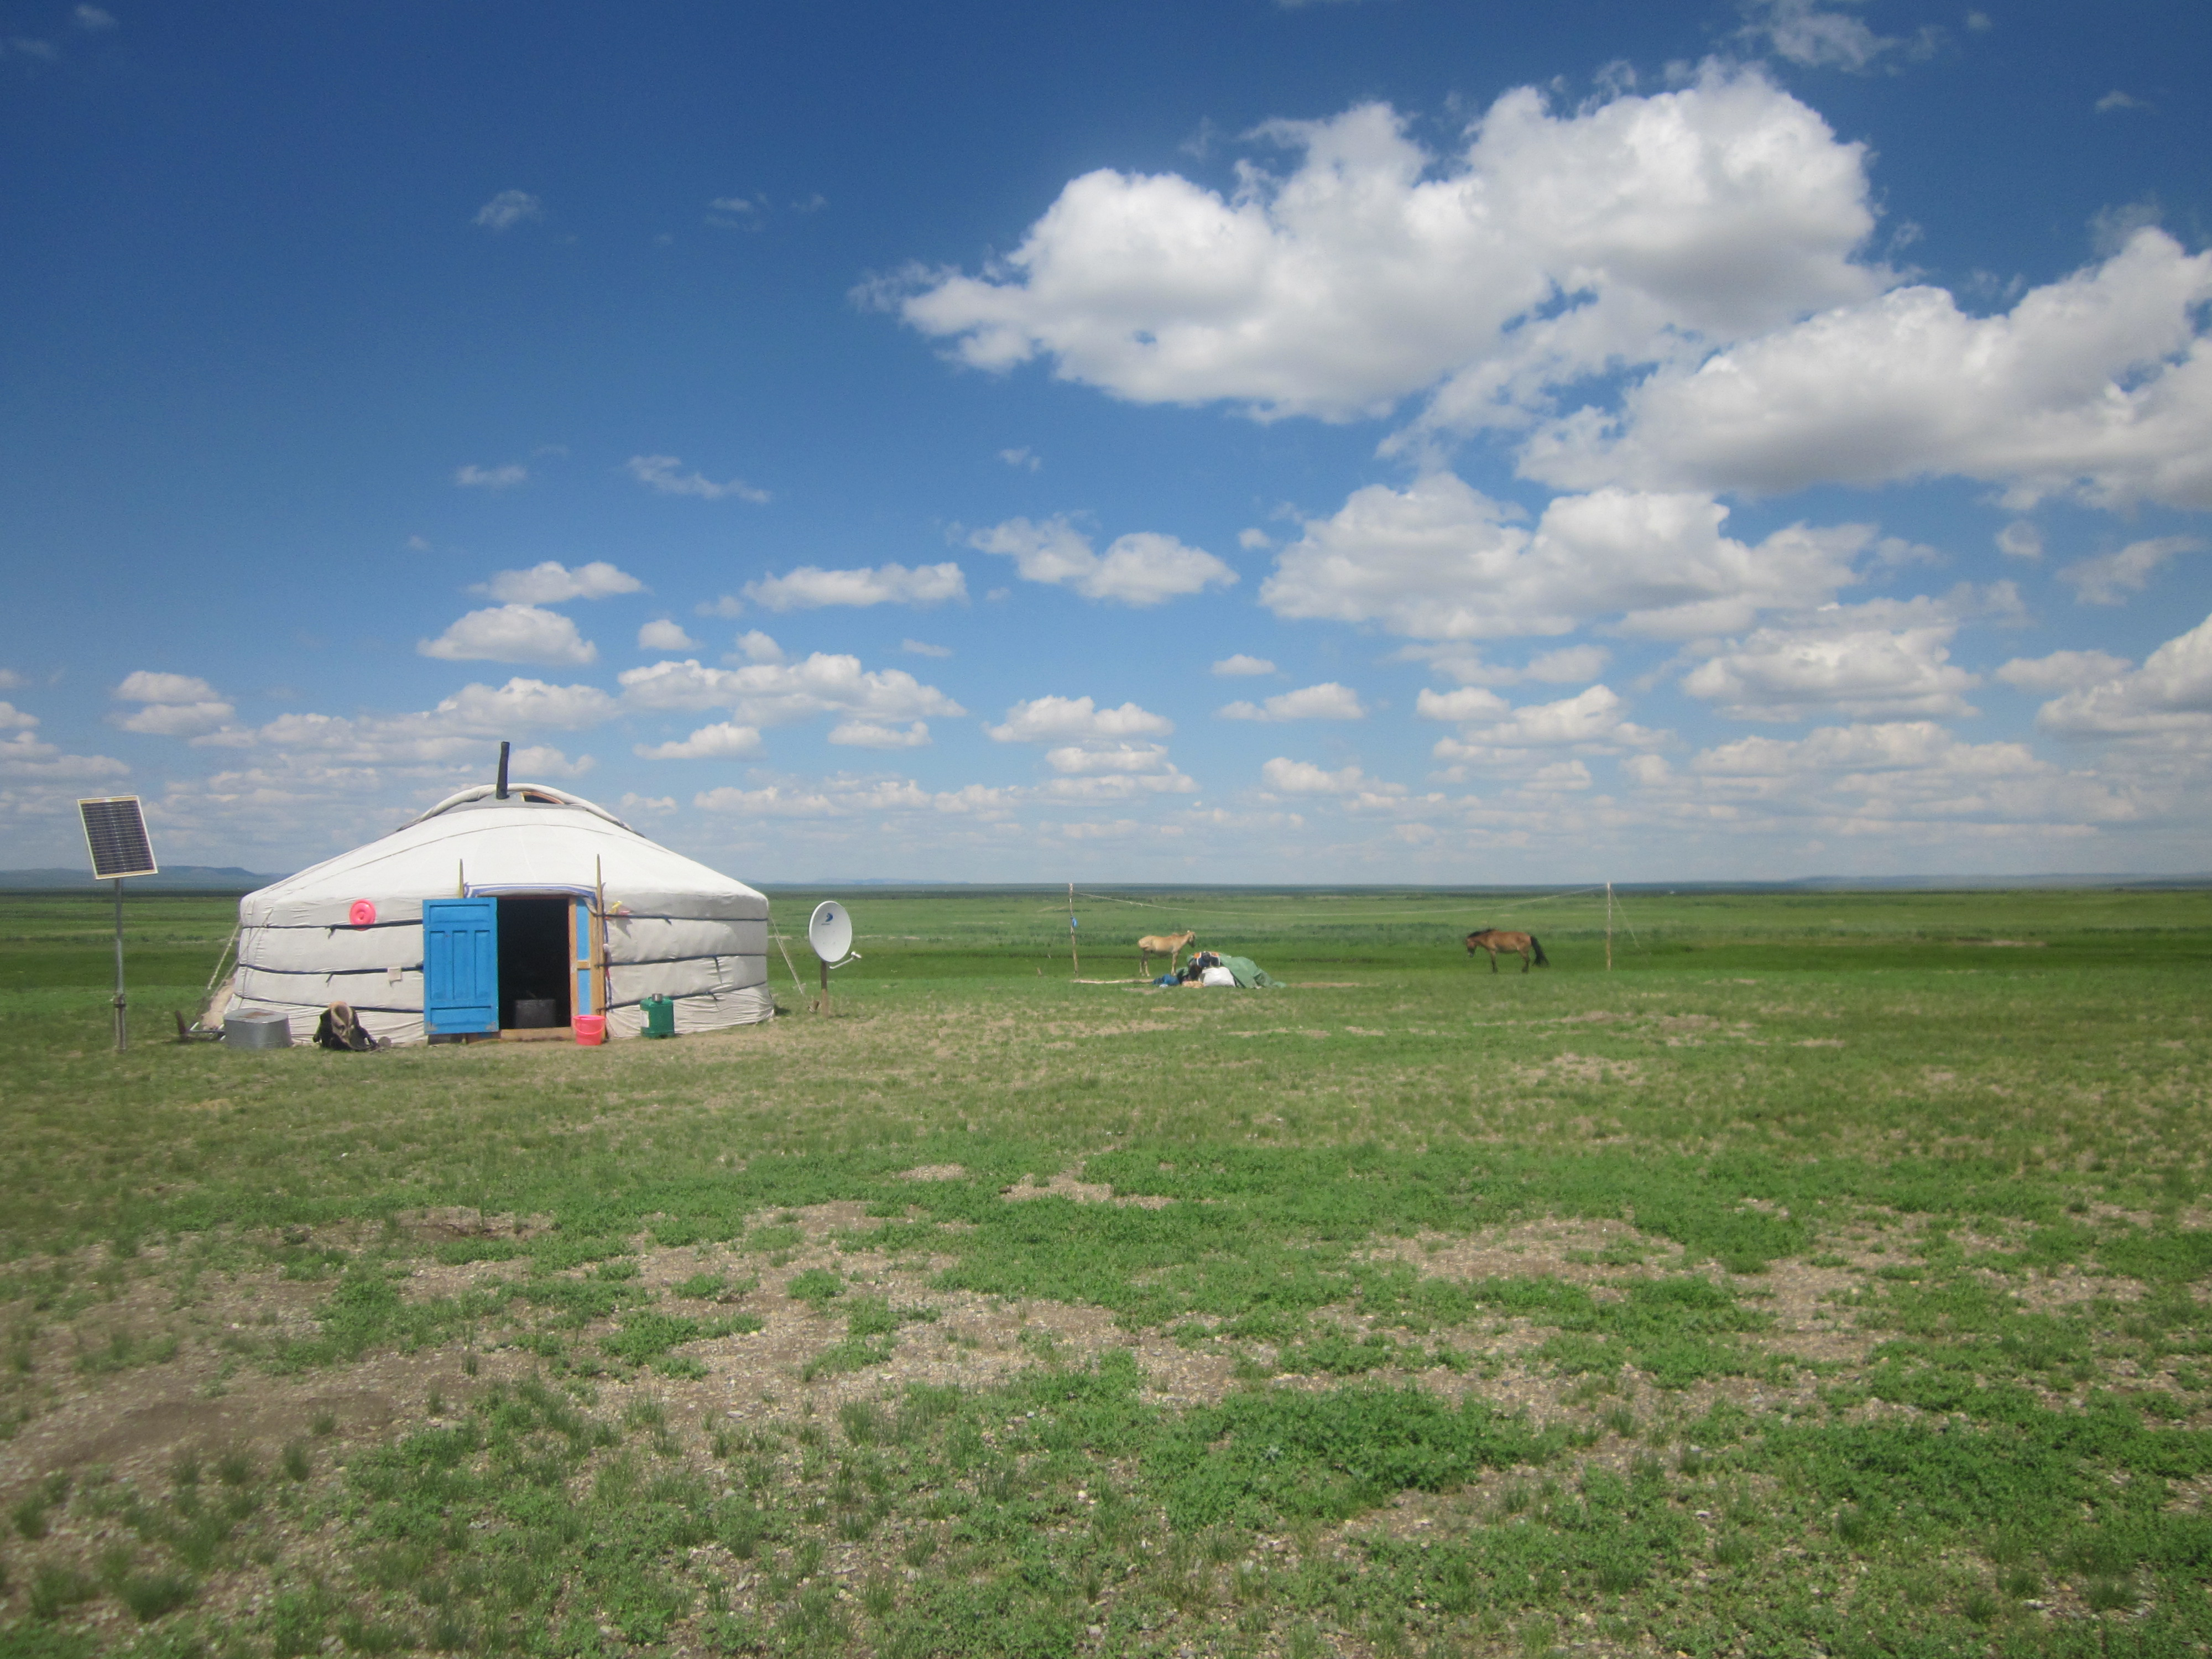 Summer Program - Travel And Tourism | Experiment in International Living: Mongolia - Nomadic Culture & Outdoor Adventure